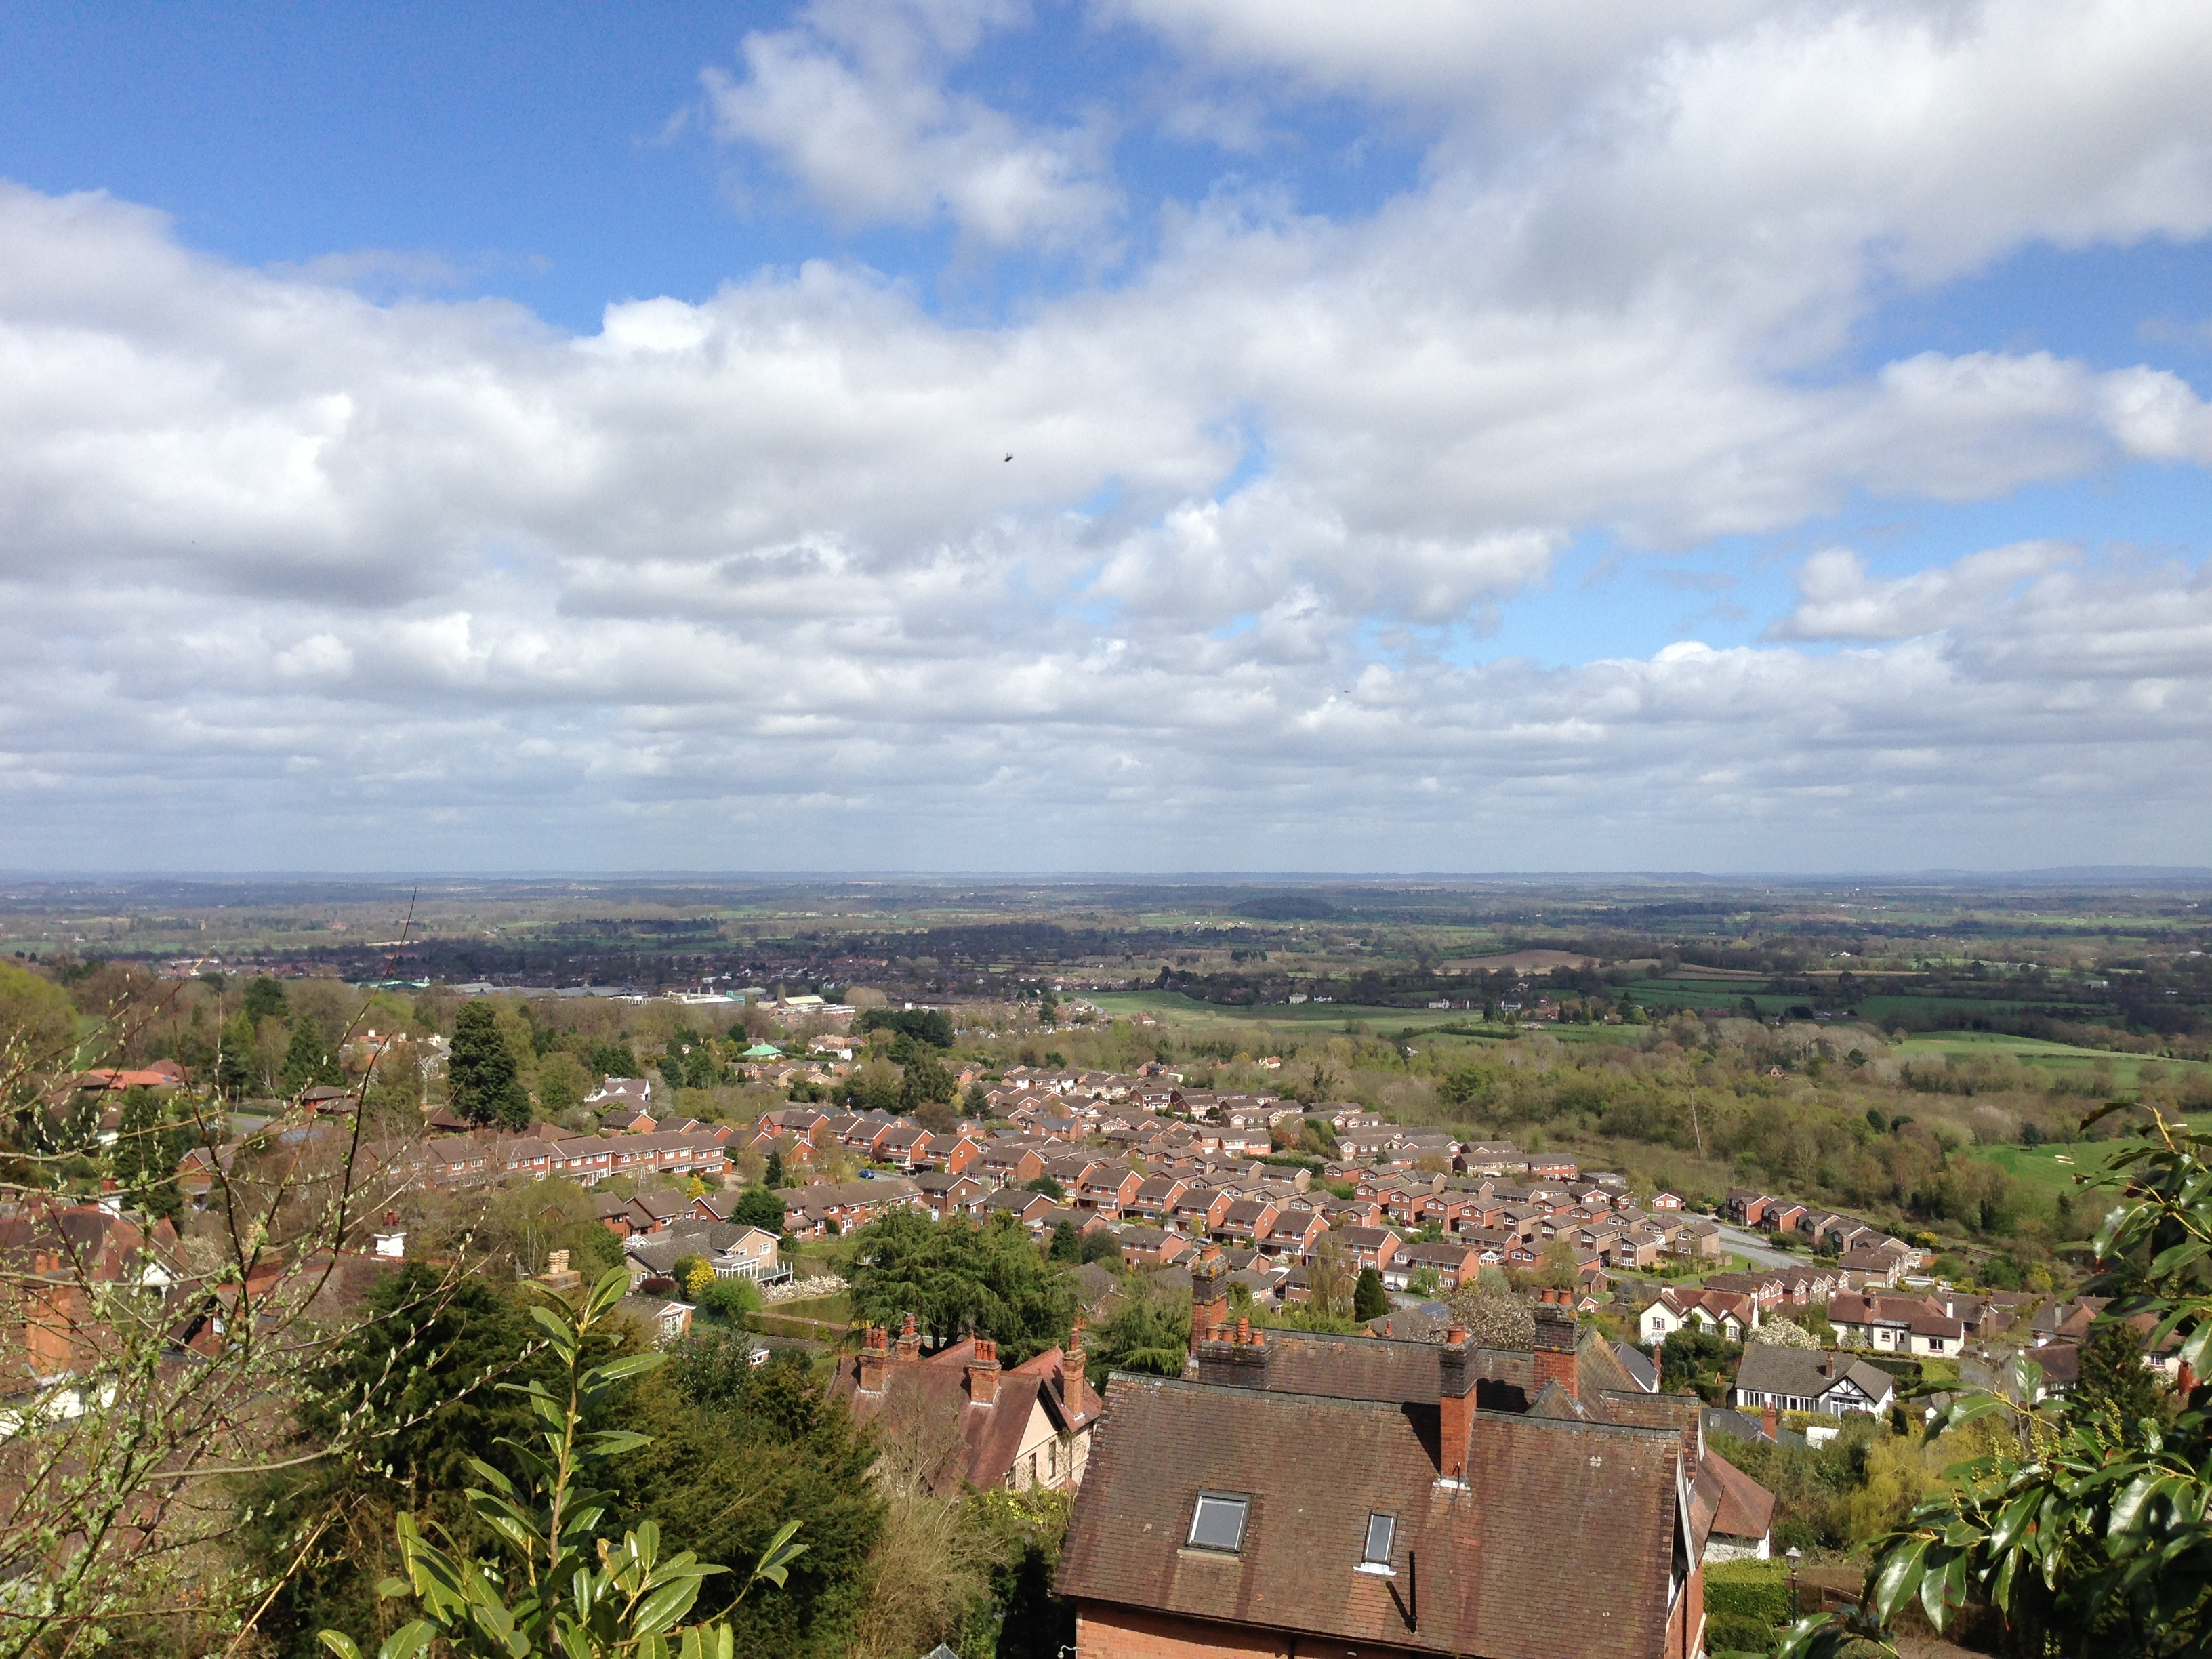 Looking out from Malvern Hills on the nicer day